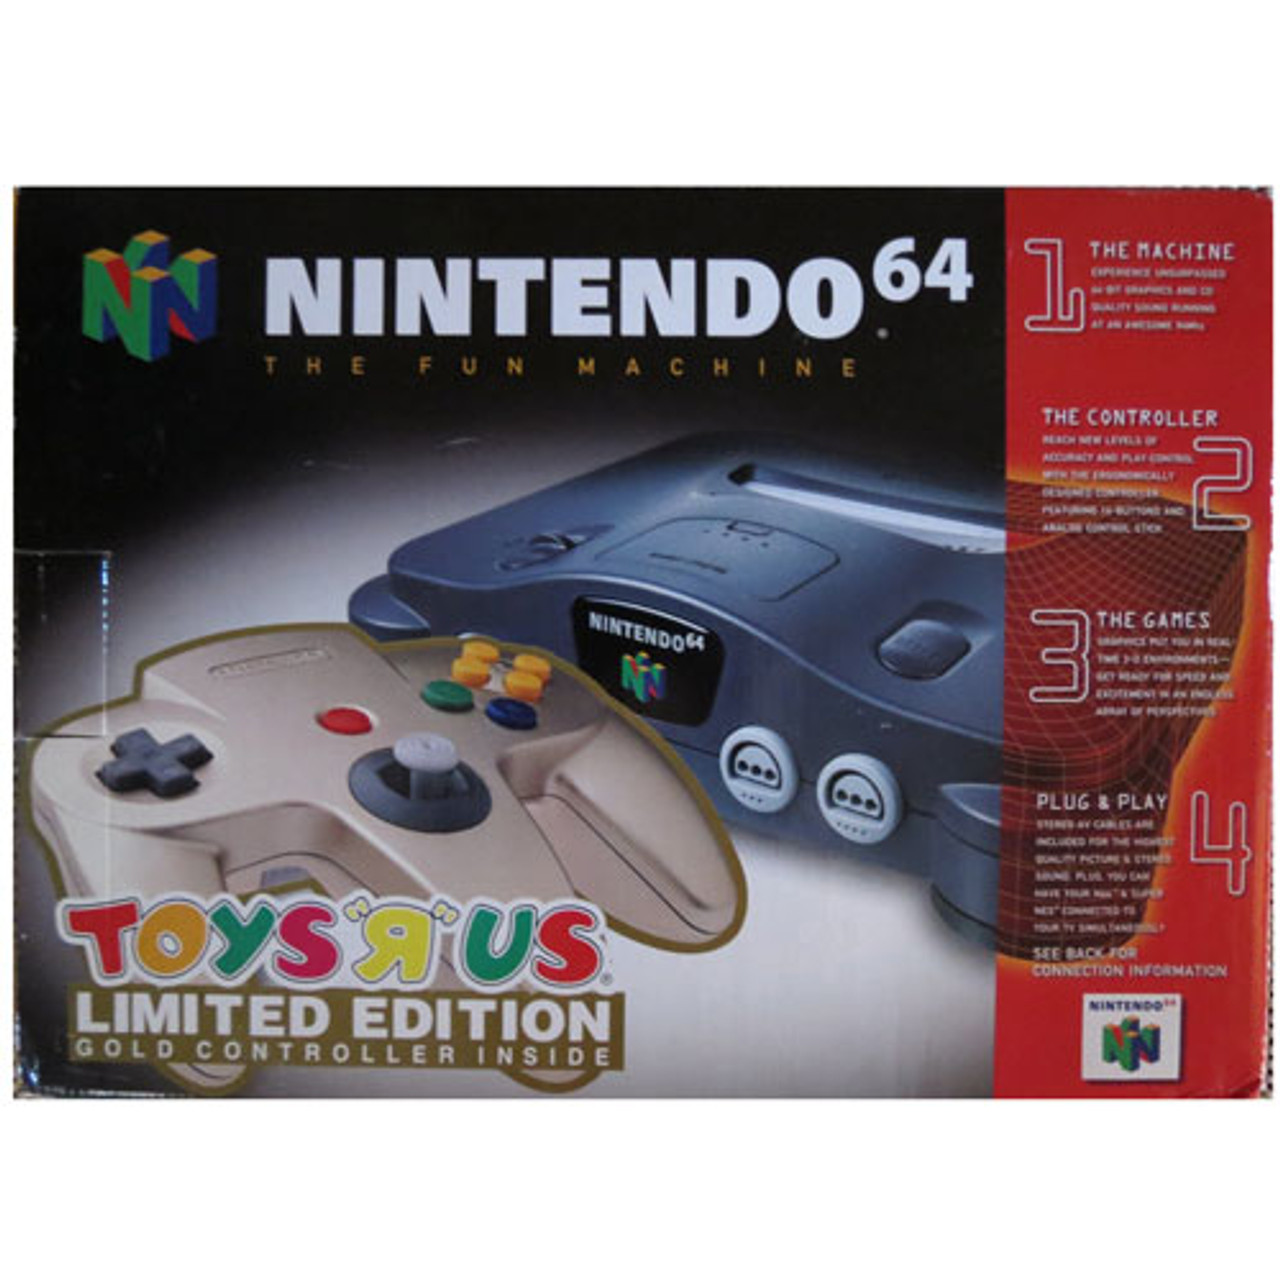 Complete N64 System with Toys R Us Limited Edition Gold Controller